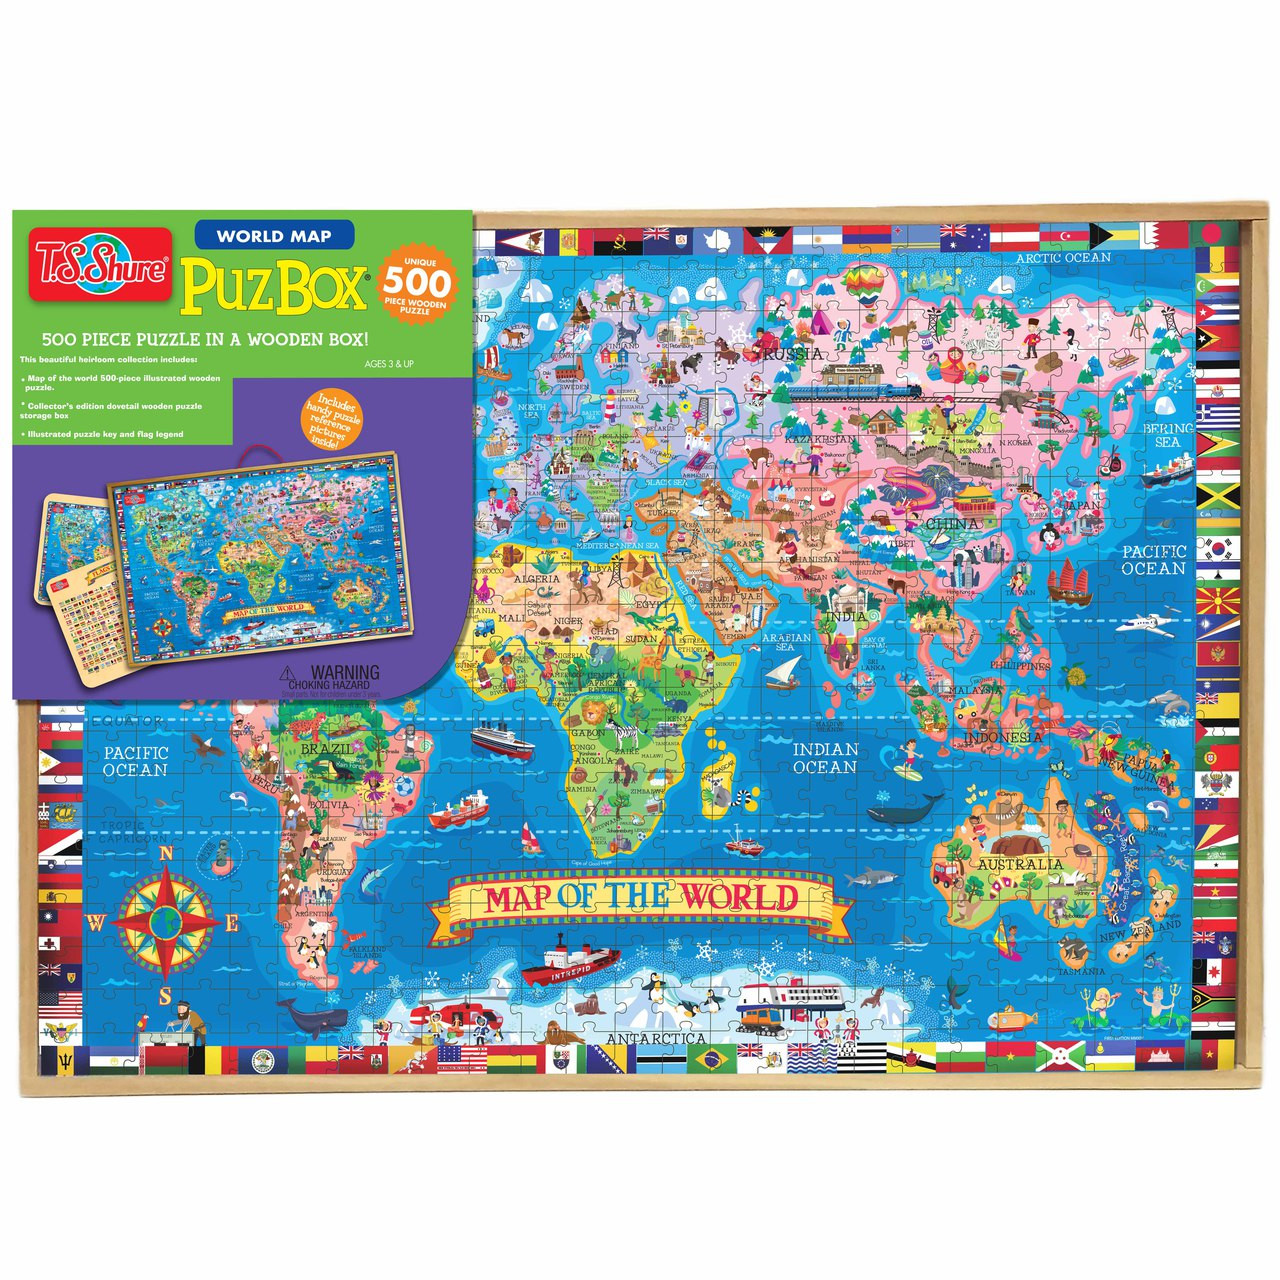 PuzBox Map of the World Wooden Puzzle in a Wood Box